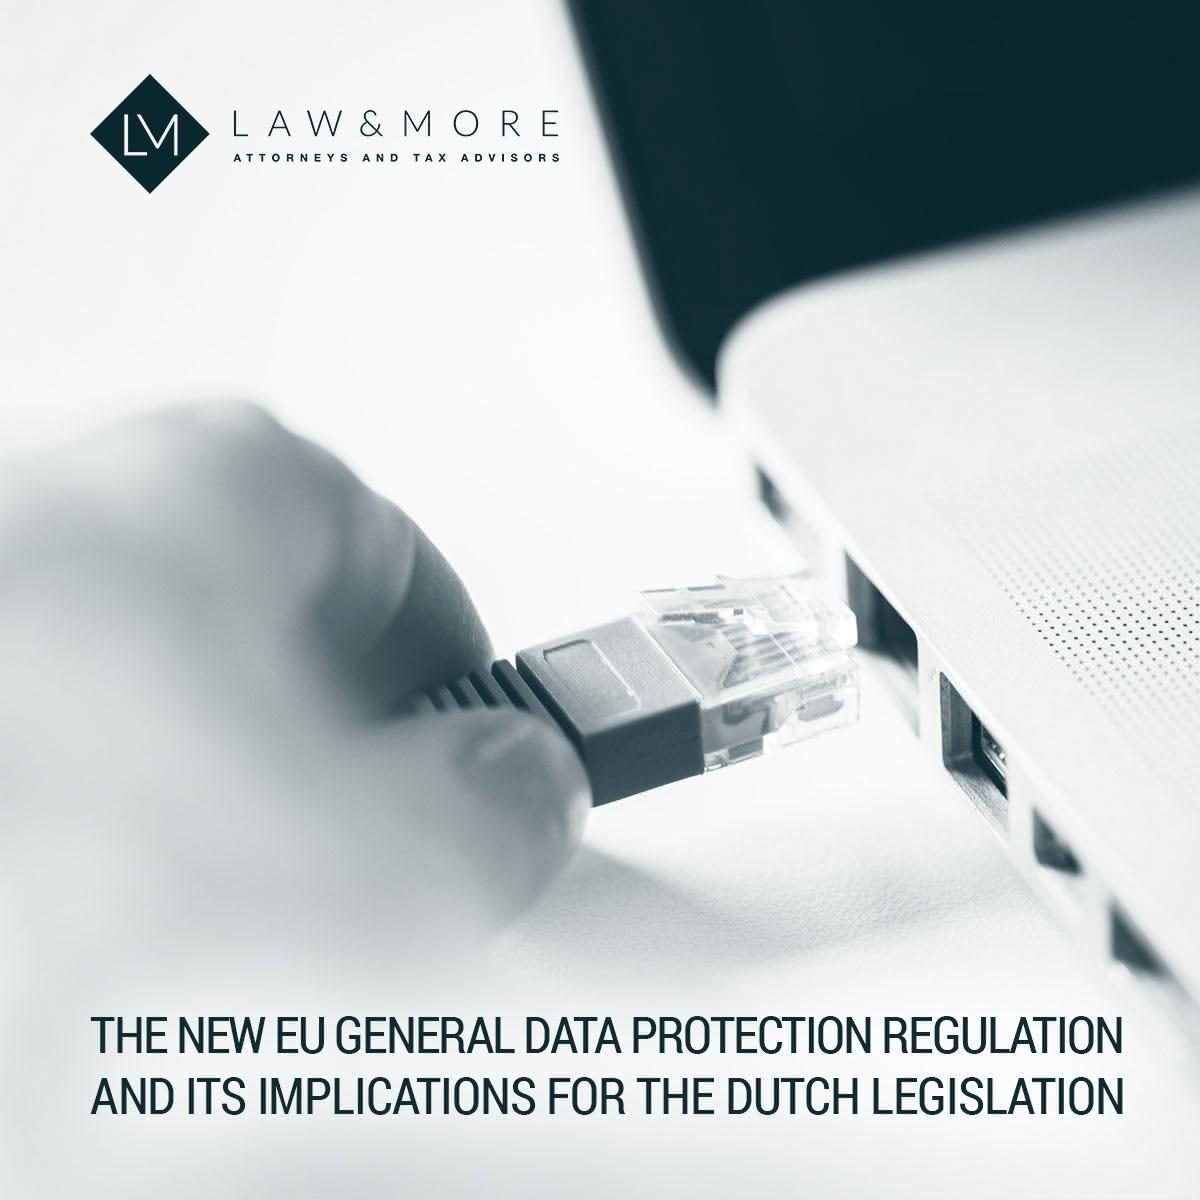 The new EU General Data Protection Regulation and its implications for the Dutch legislation 1x1 image